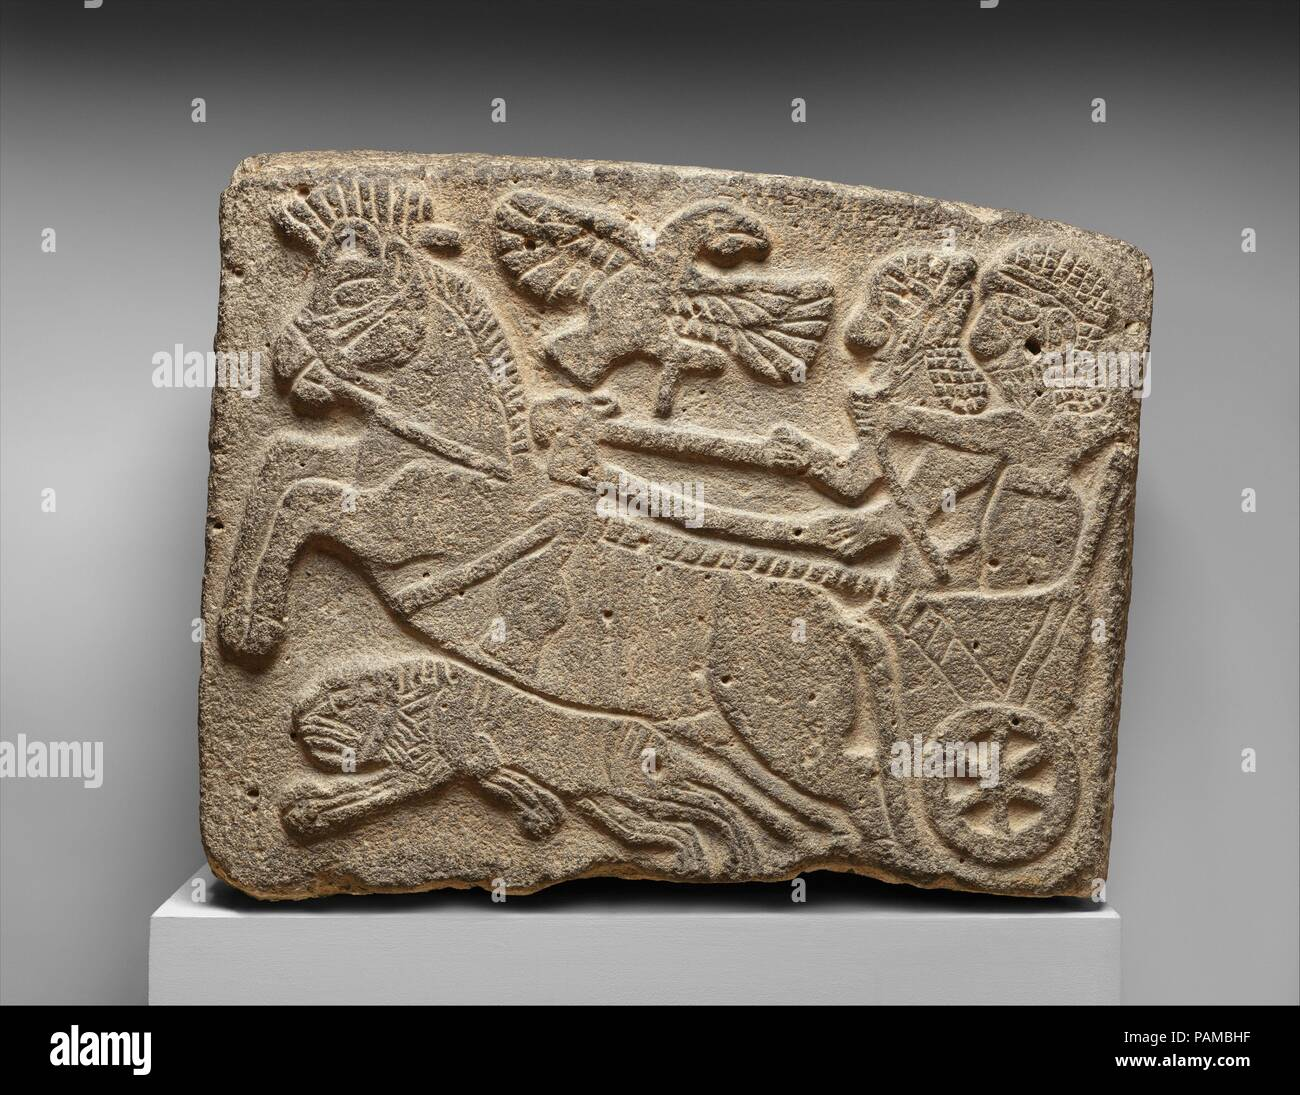 Orthostat relief: lion-hunt scene. Culture: Hittite. Dimensions: H. 22 in. (56 cm). Date: ca. 9th century B.C..  The powerful Neo-Assyrian Empire influenced the surrounding region culturally as well as politically. In the west a number of small but powerful Aramaean city-states acted as a barrier between Assyria and the Mediterranean coast. These have been called Neo-Hittite city-states because of their dynastic continuity and relation to the preceding Hittites of Anatolia. These rival states were gradually brought under the control of the Neo-Assyrian Empire by military conquest.  Stone slabs Stock Photo